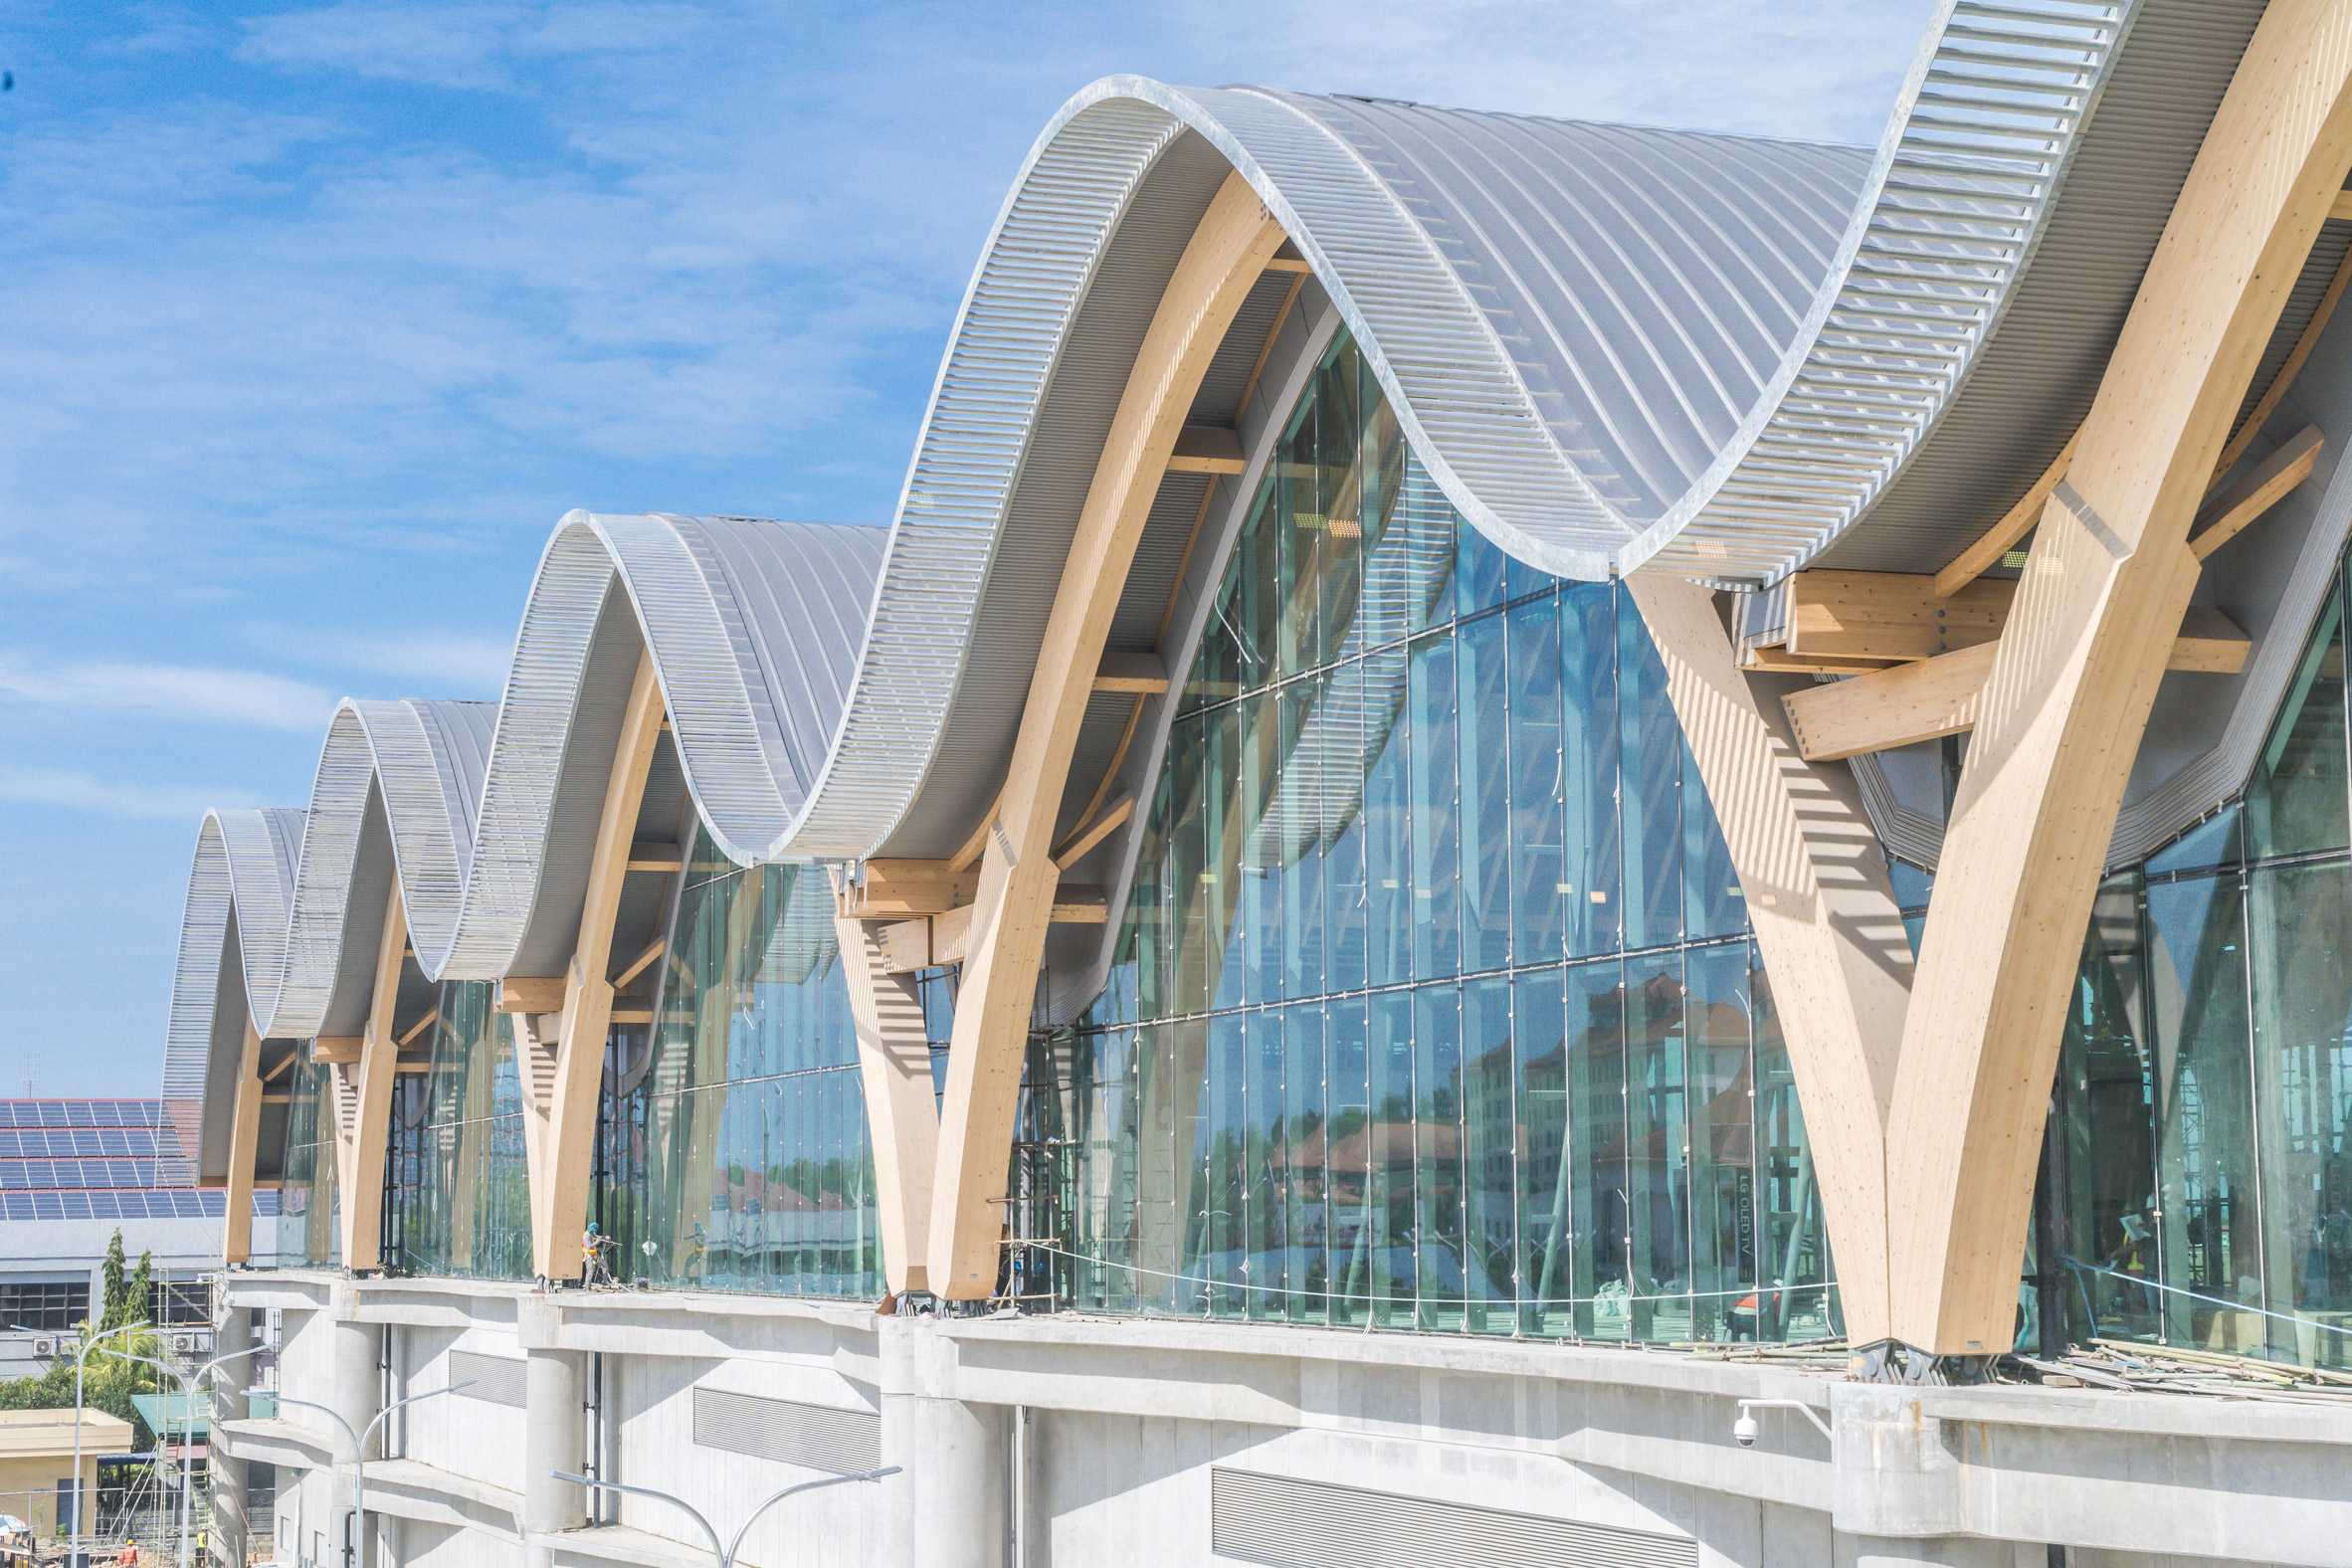 Timber arches support wavy roof of Mactan Cebu International Airport in the Philippines